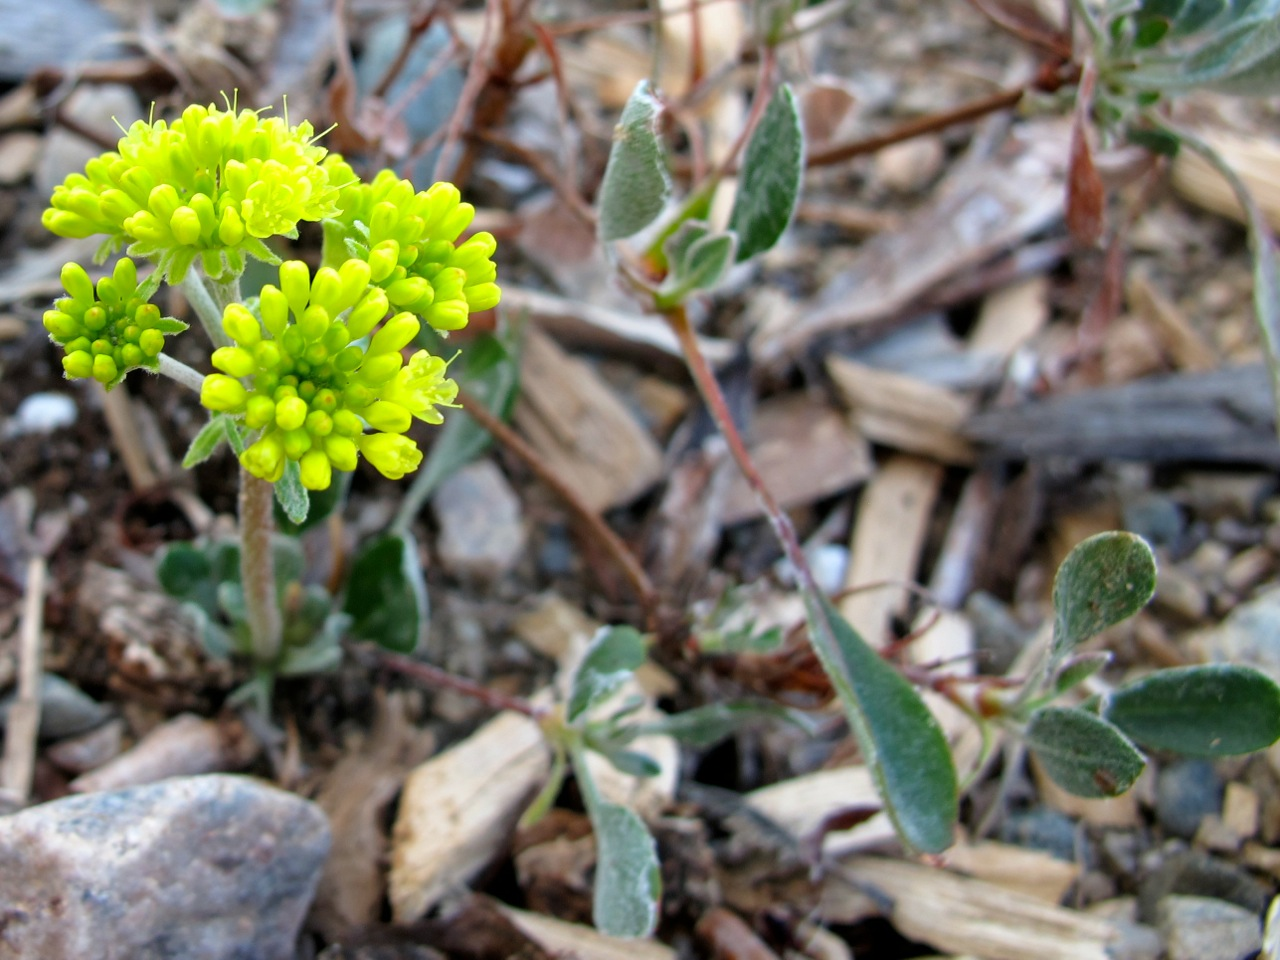 'Poncha Pass Red' sulfur-flower buckwheat (Eriogonum umbellatum 'Poncha Pass Red')